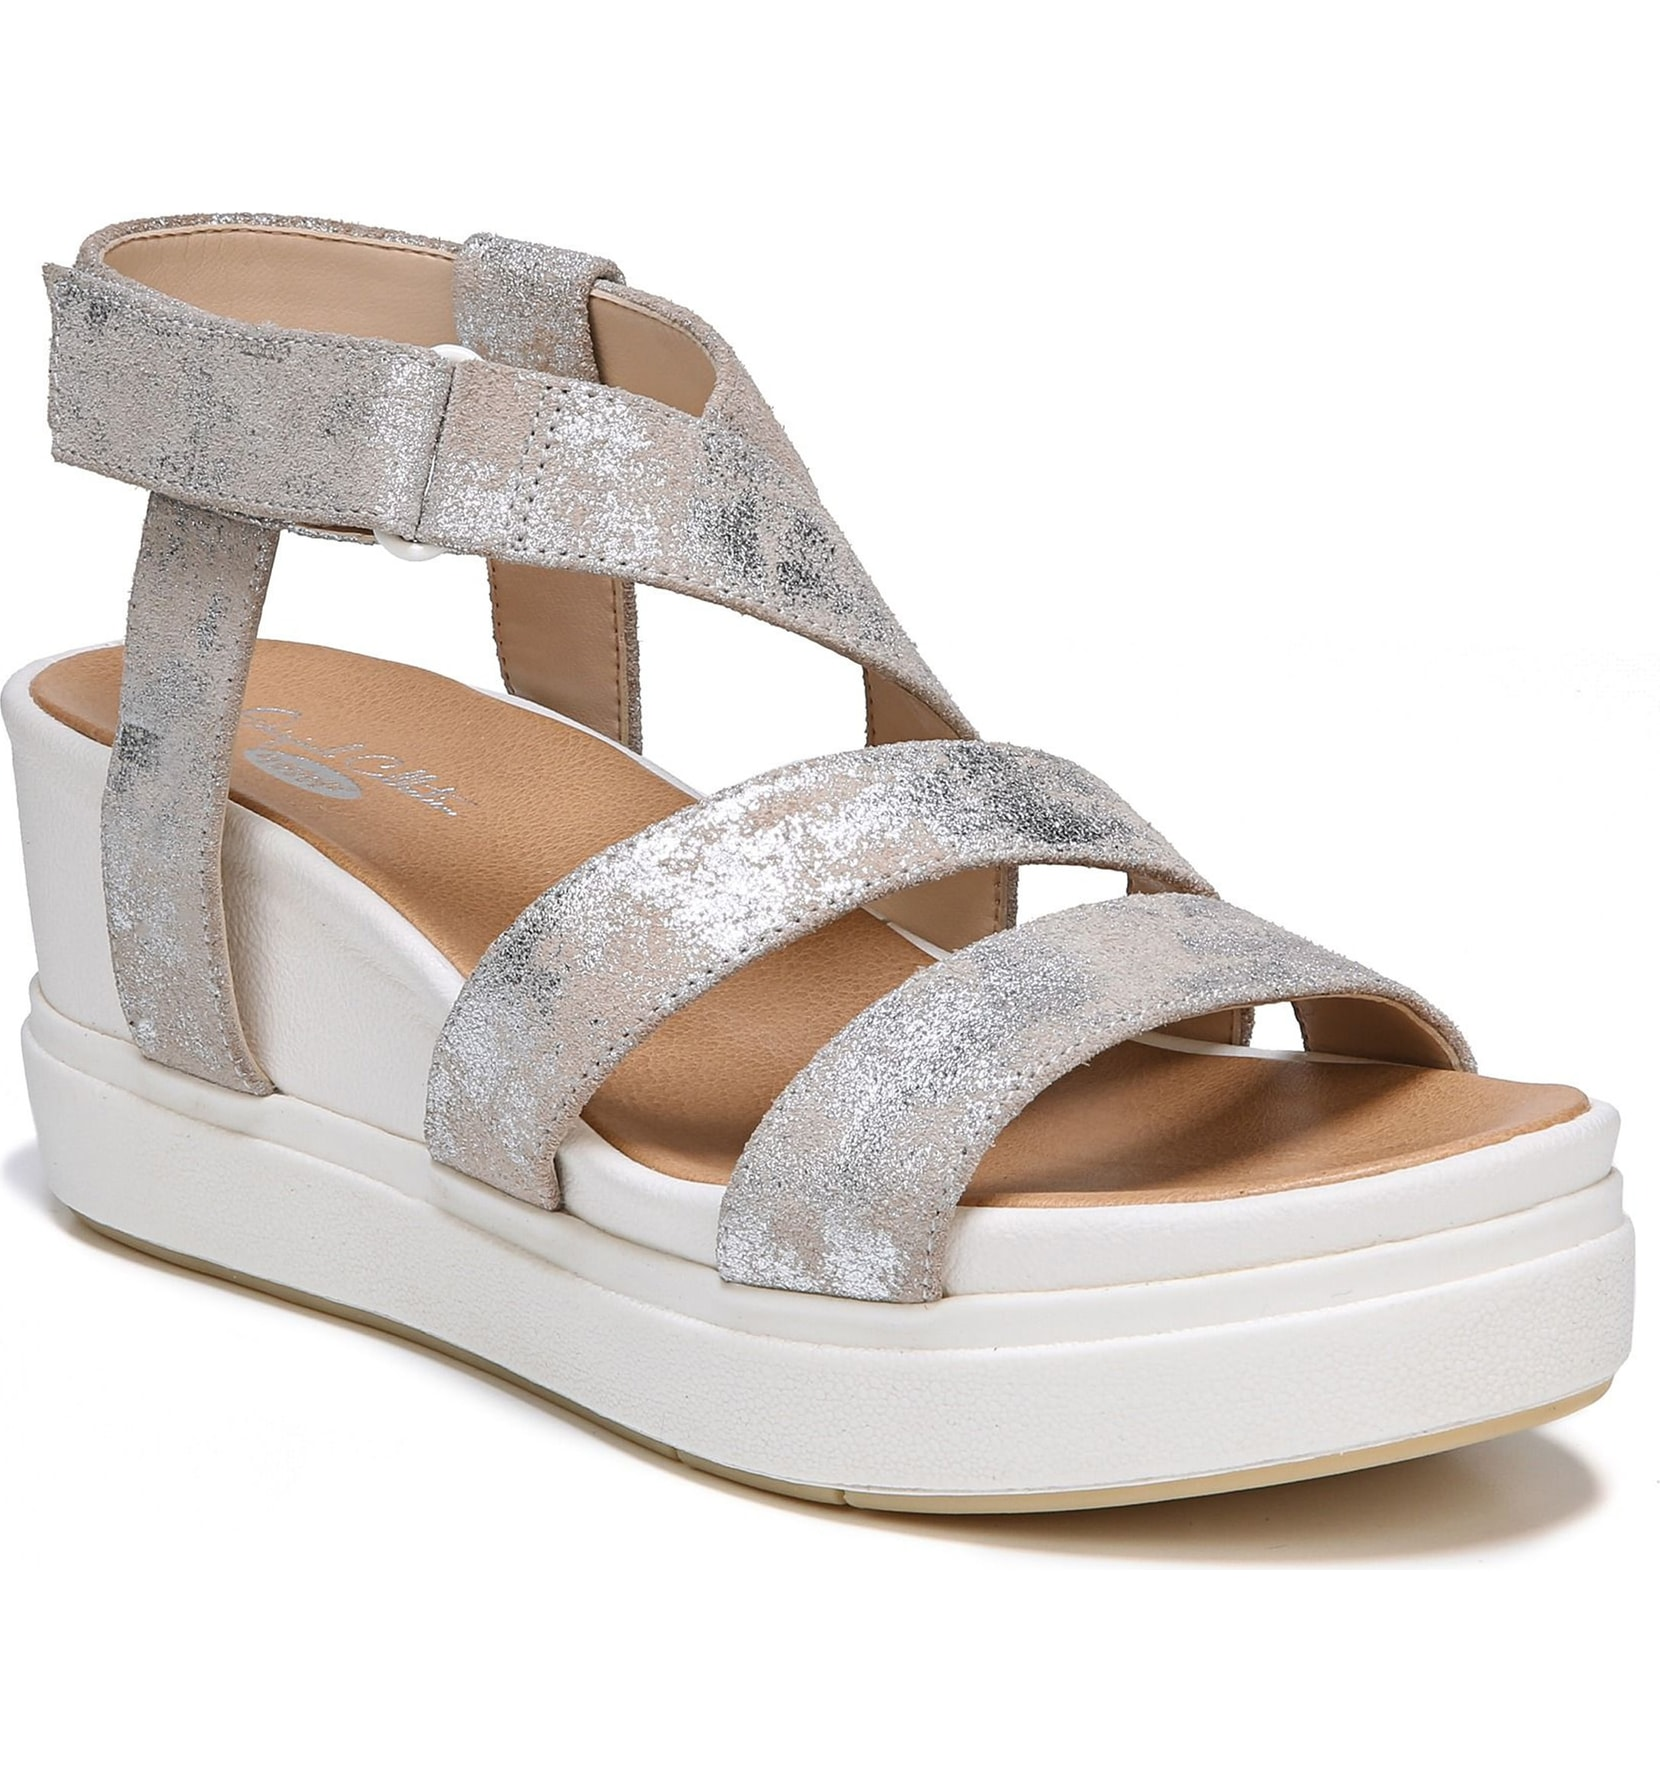 silver, metallic, leather, sandal, strappy, Dr Scholl's